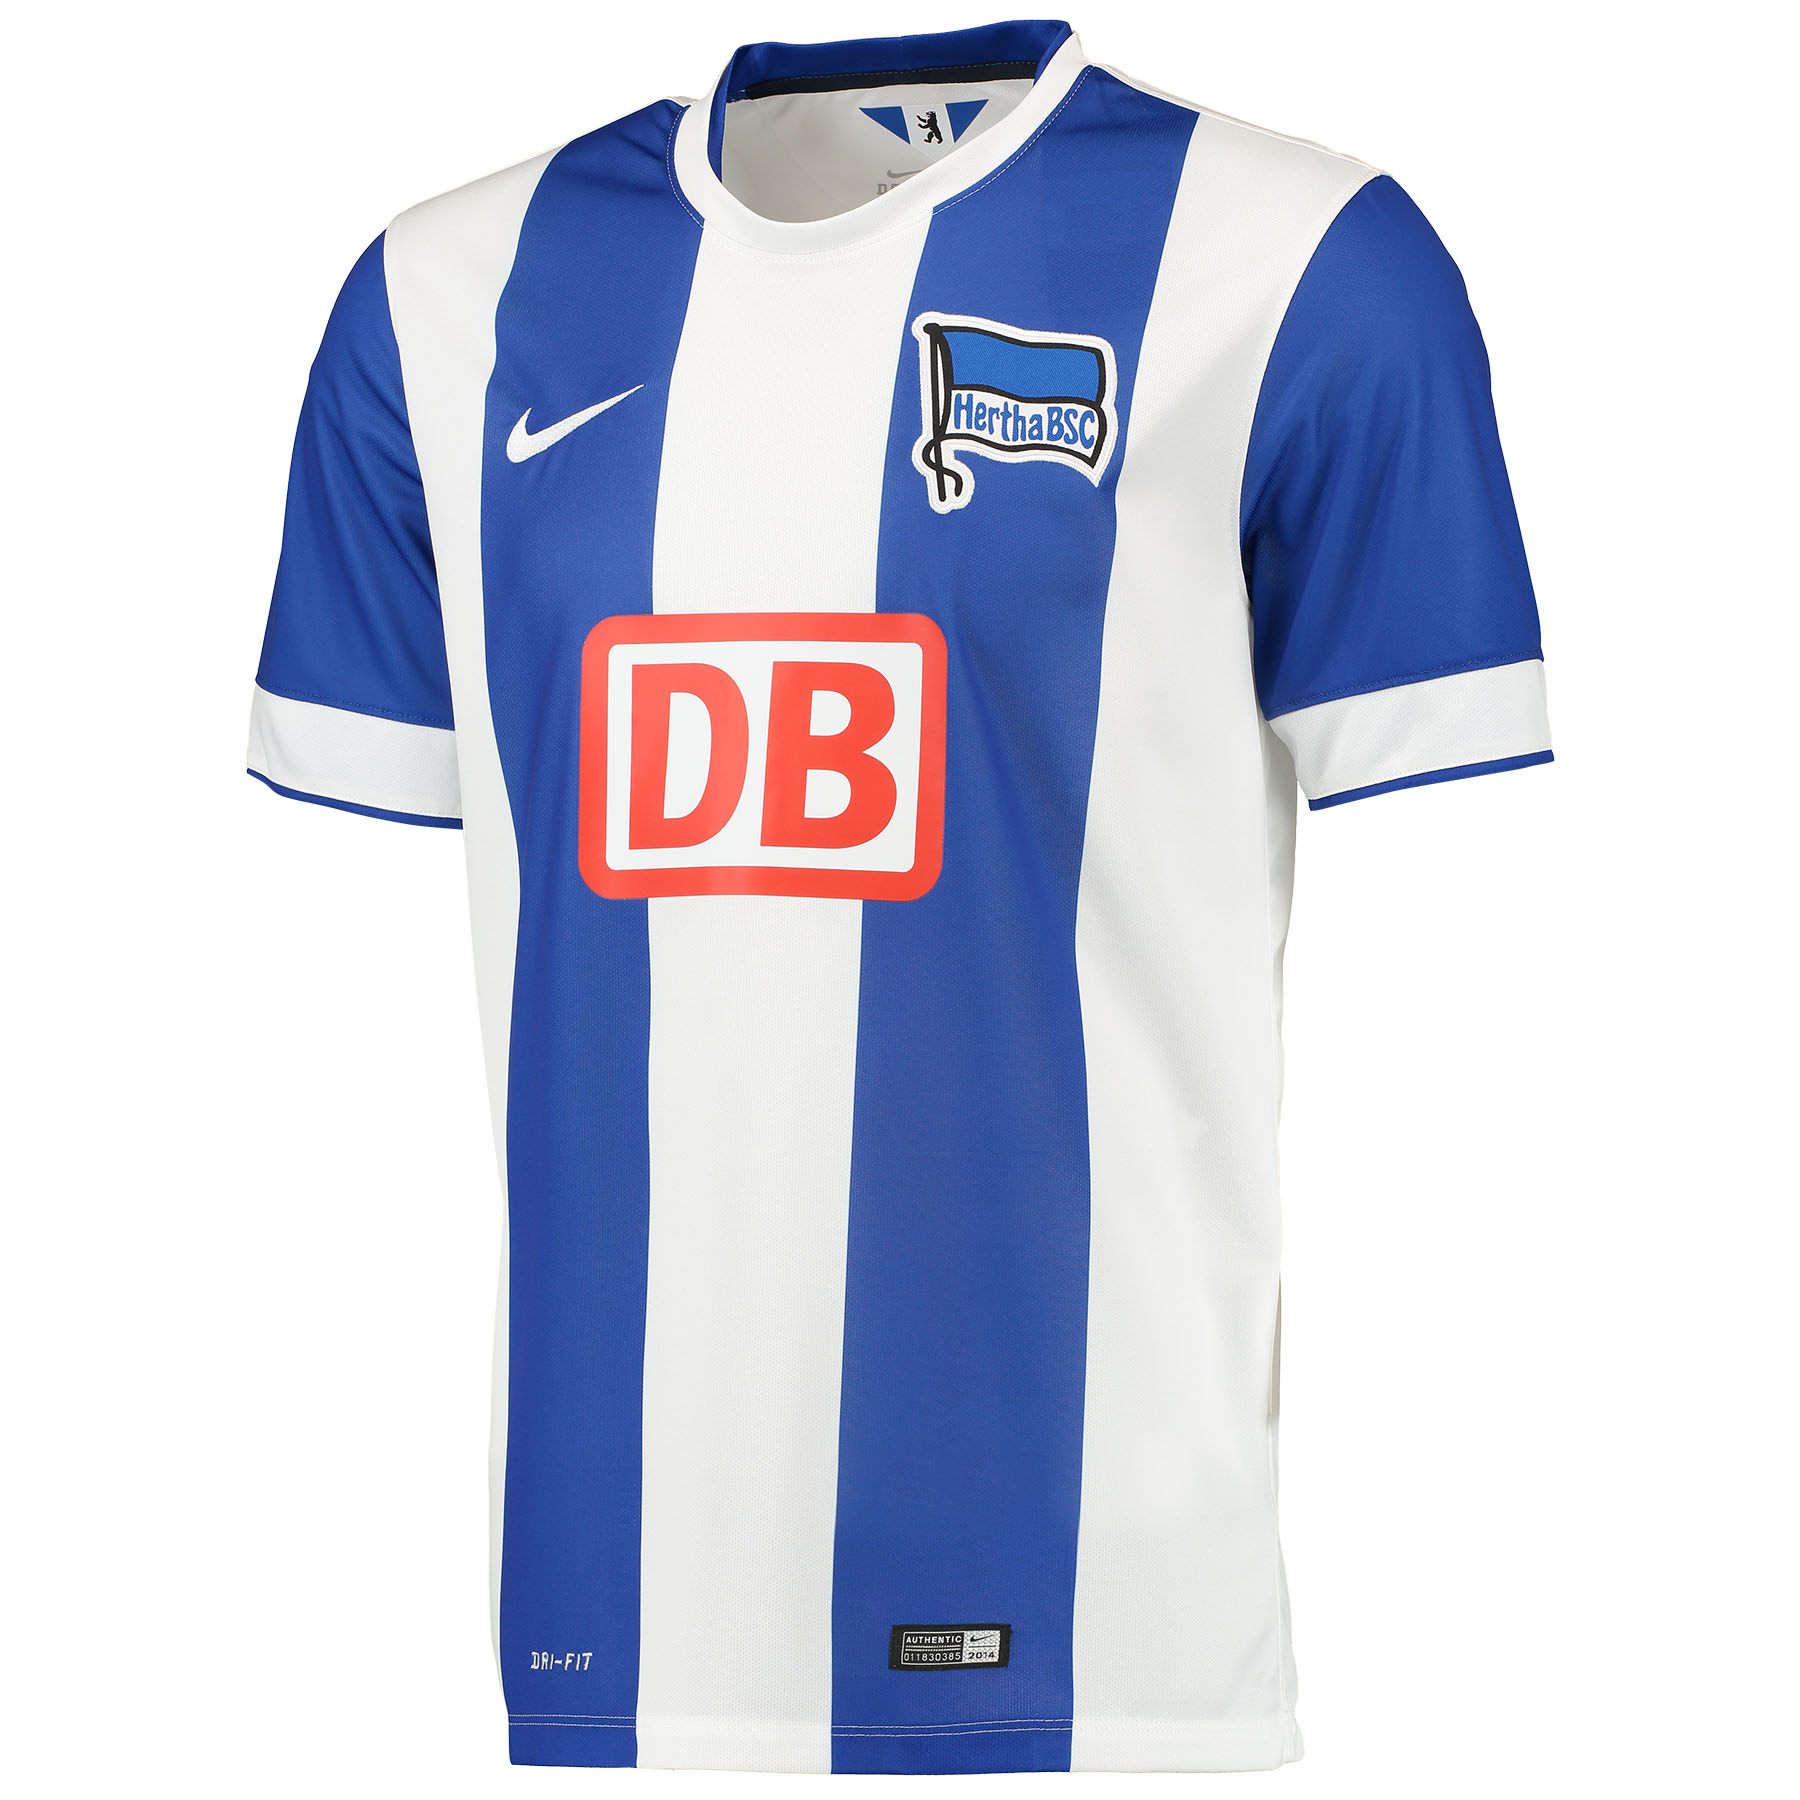 Hertha Berlin Home Shirt 2014/15 Blue